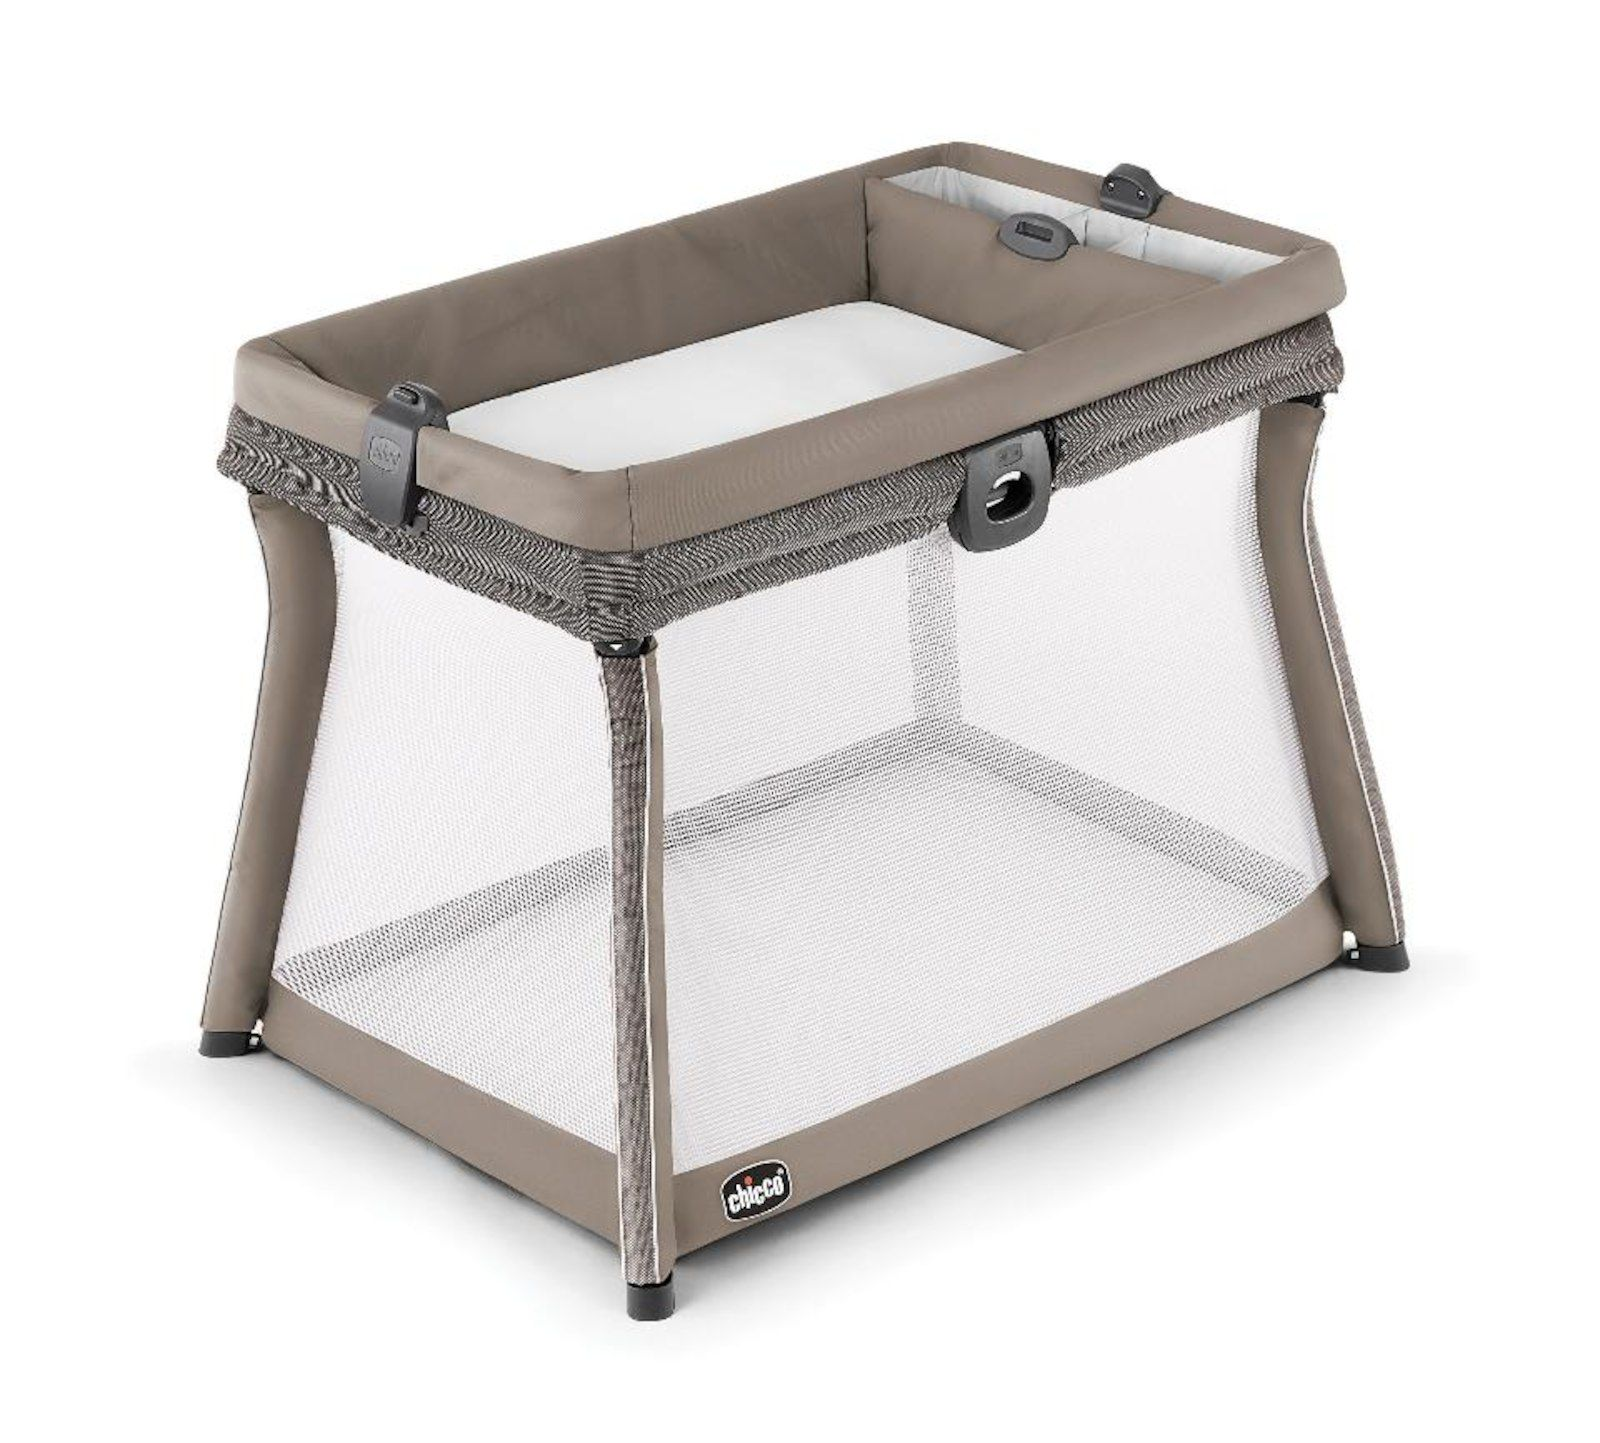 The Chicco Fastasleep Is A Full Size Travel Playard With